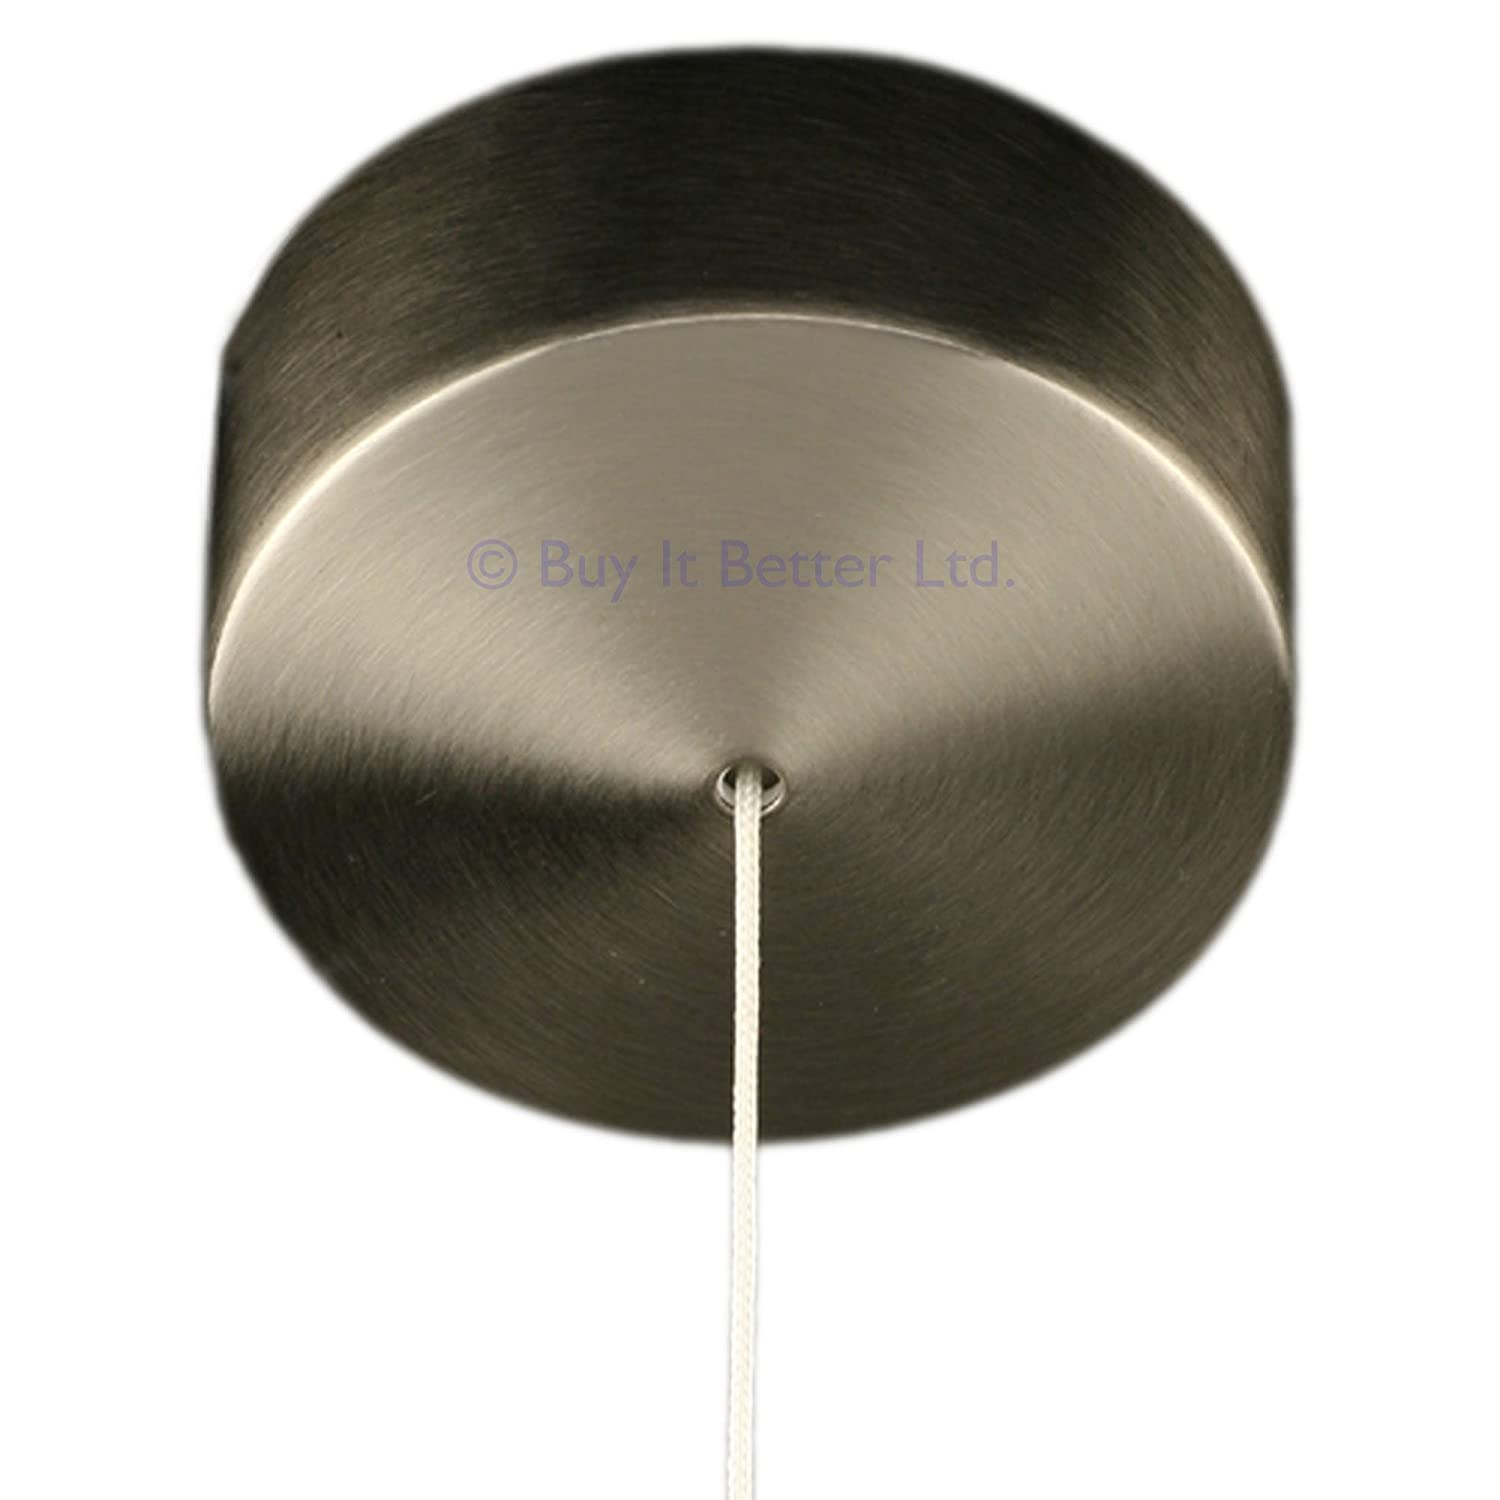 Brushed steel covered bathroom ceiling light pull switch with cord brushed steel covered bathroom ceiling light pull switch with cord amazon diy tools aloadofball Gallery